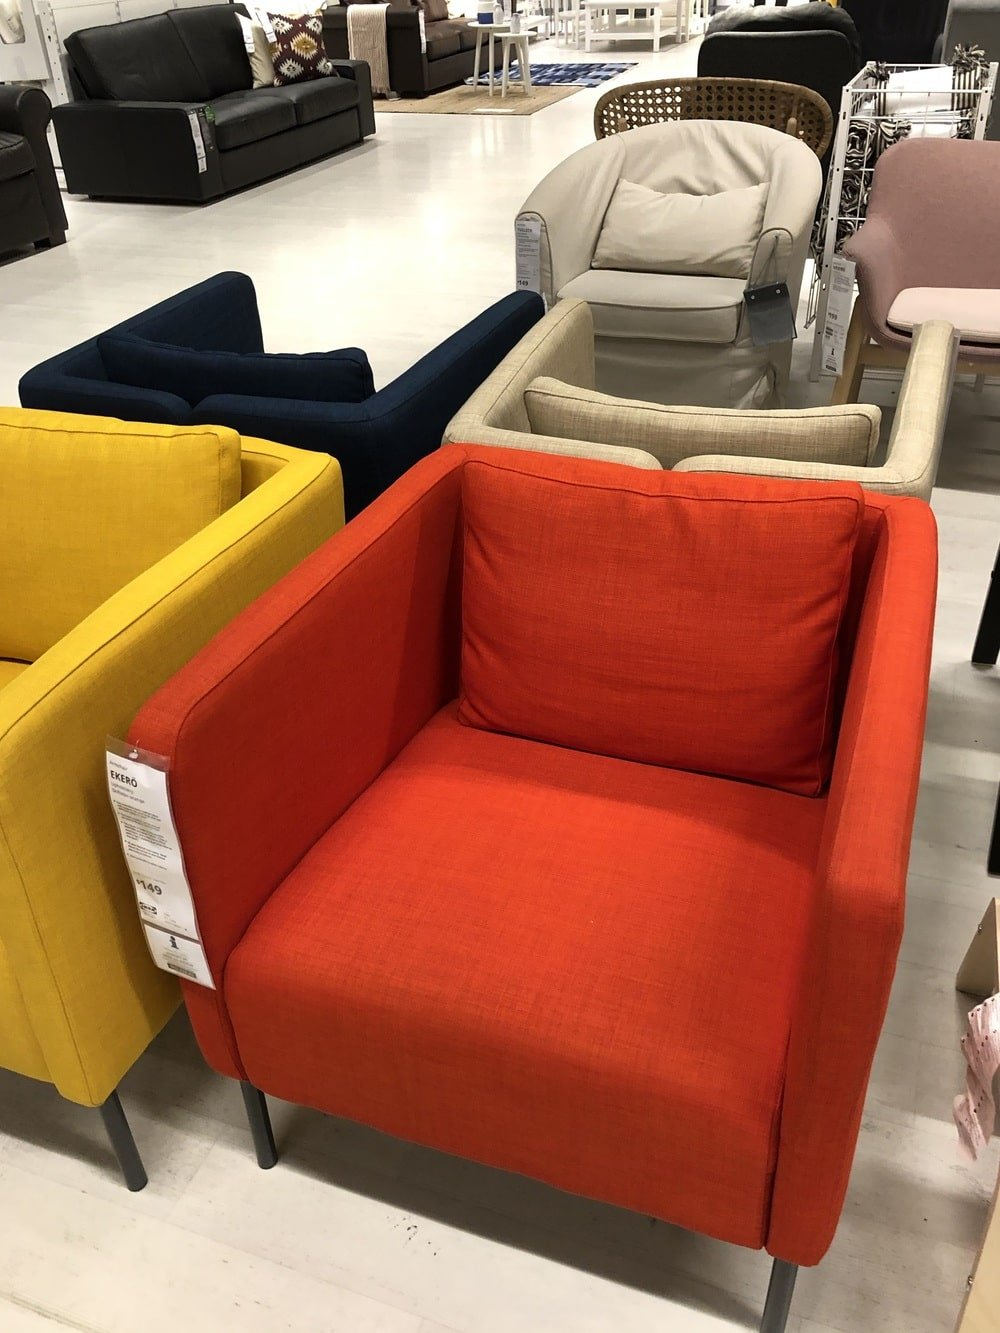 Our Mega IKEA Armchair Reviews Guide (After a Fun IKEA Store Visit)